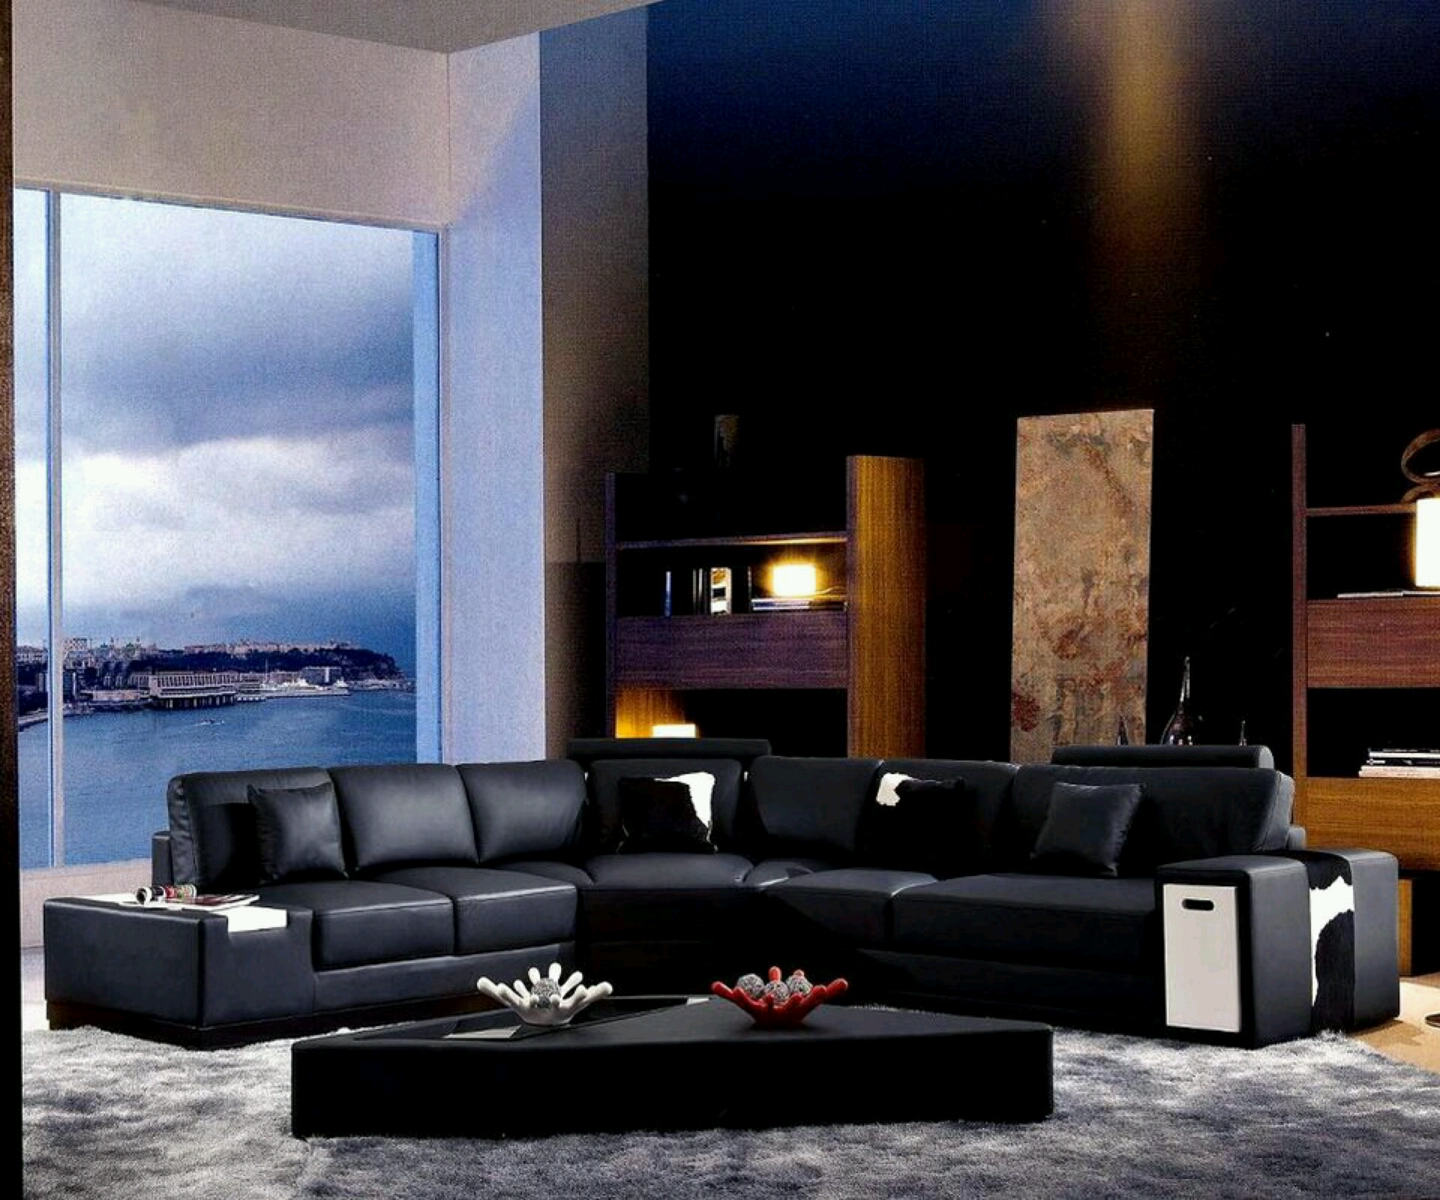 Luxury living rooms interior modern designs ideas for Luxury living room design